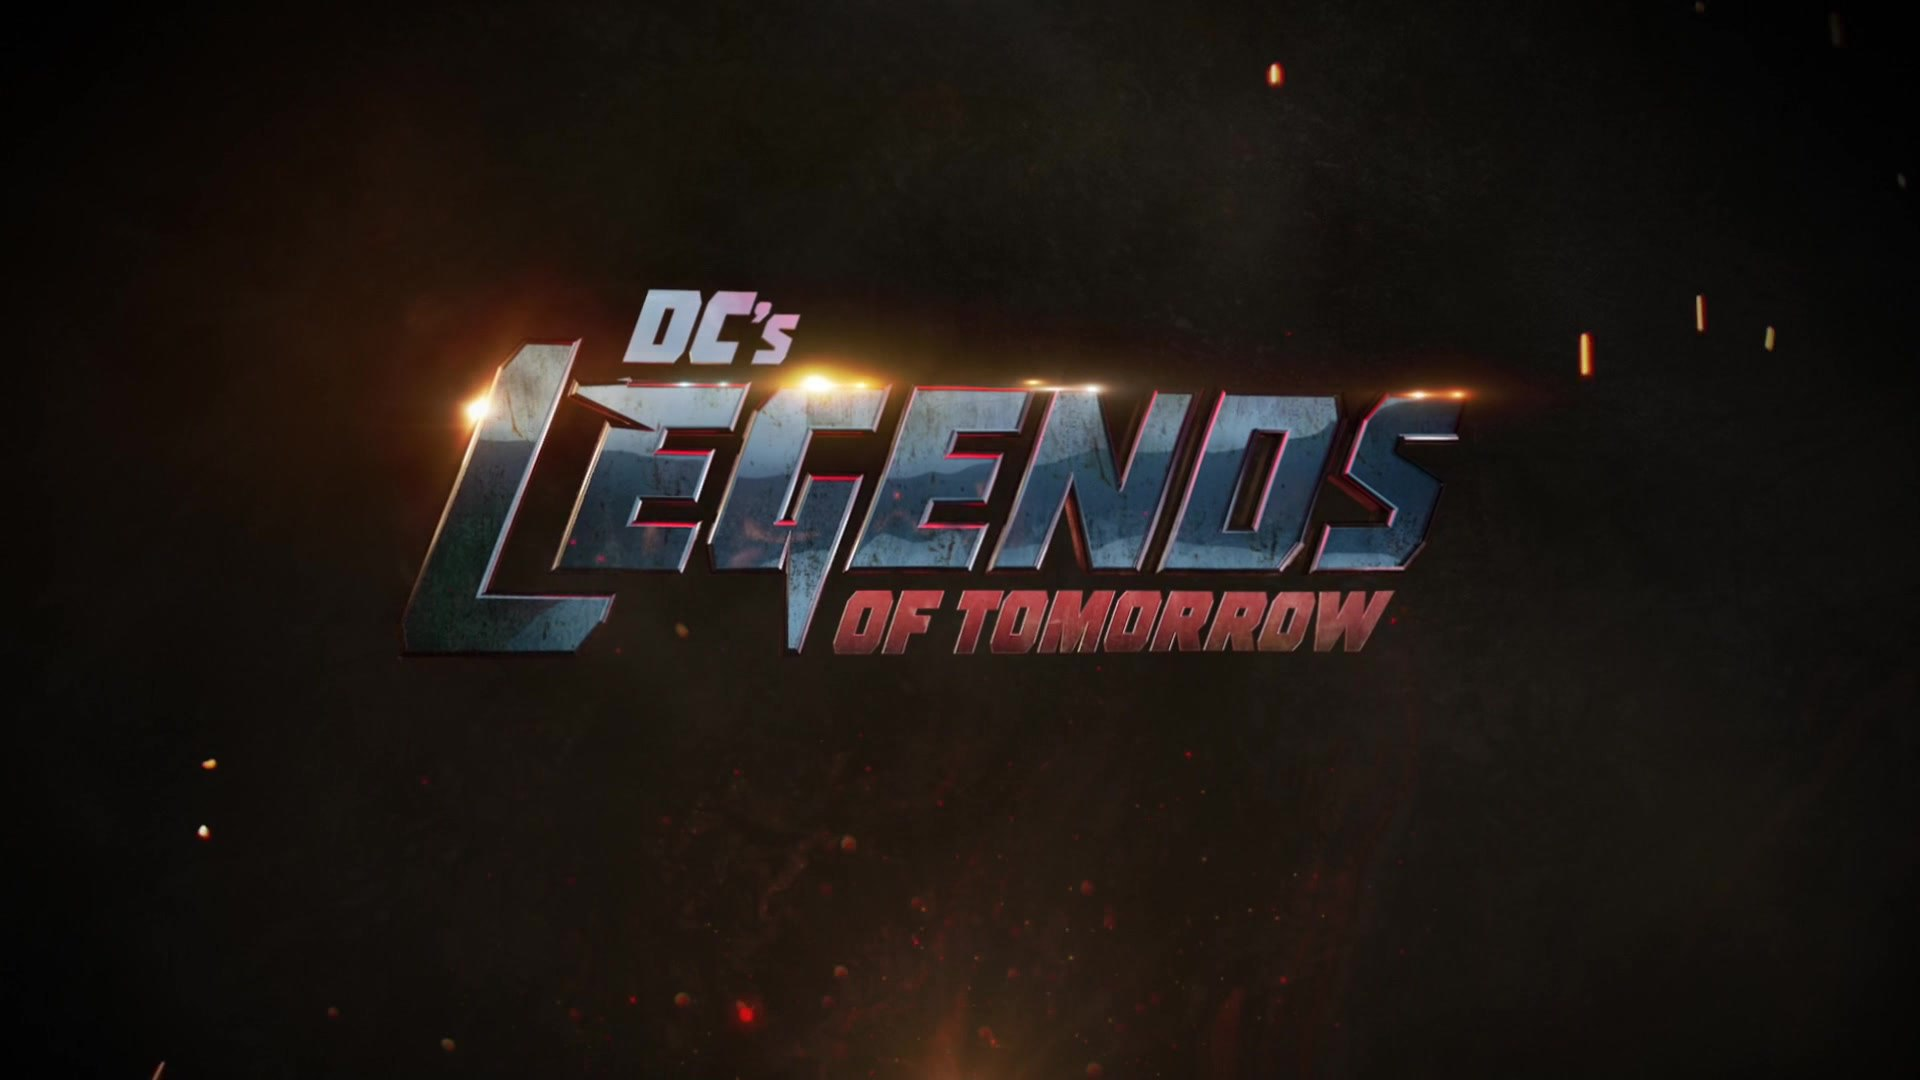 DC's Legends of Tomorrow (TV Series) Episode: Doomworld